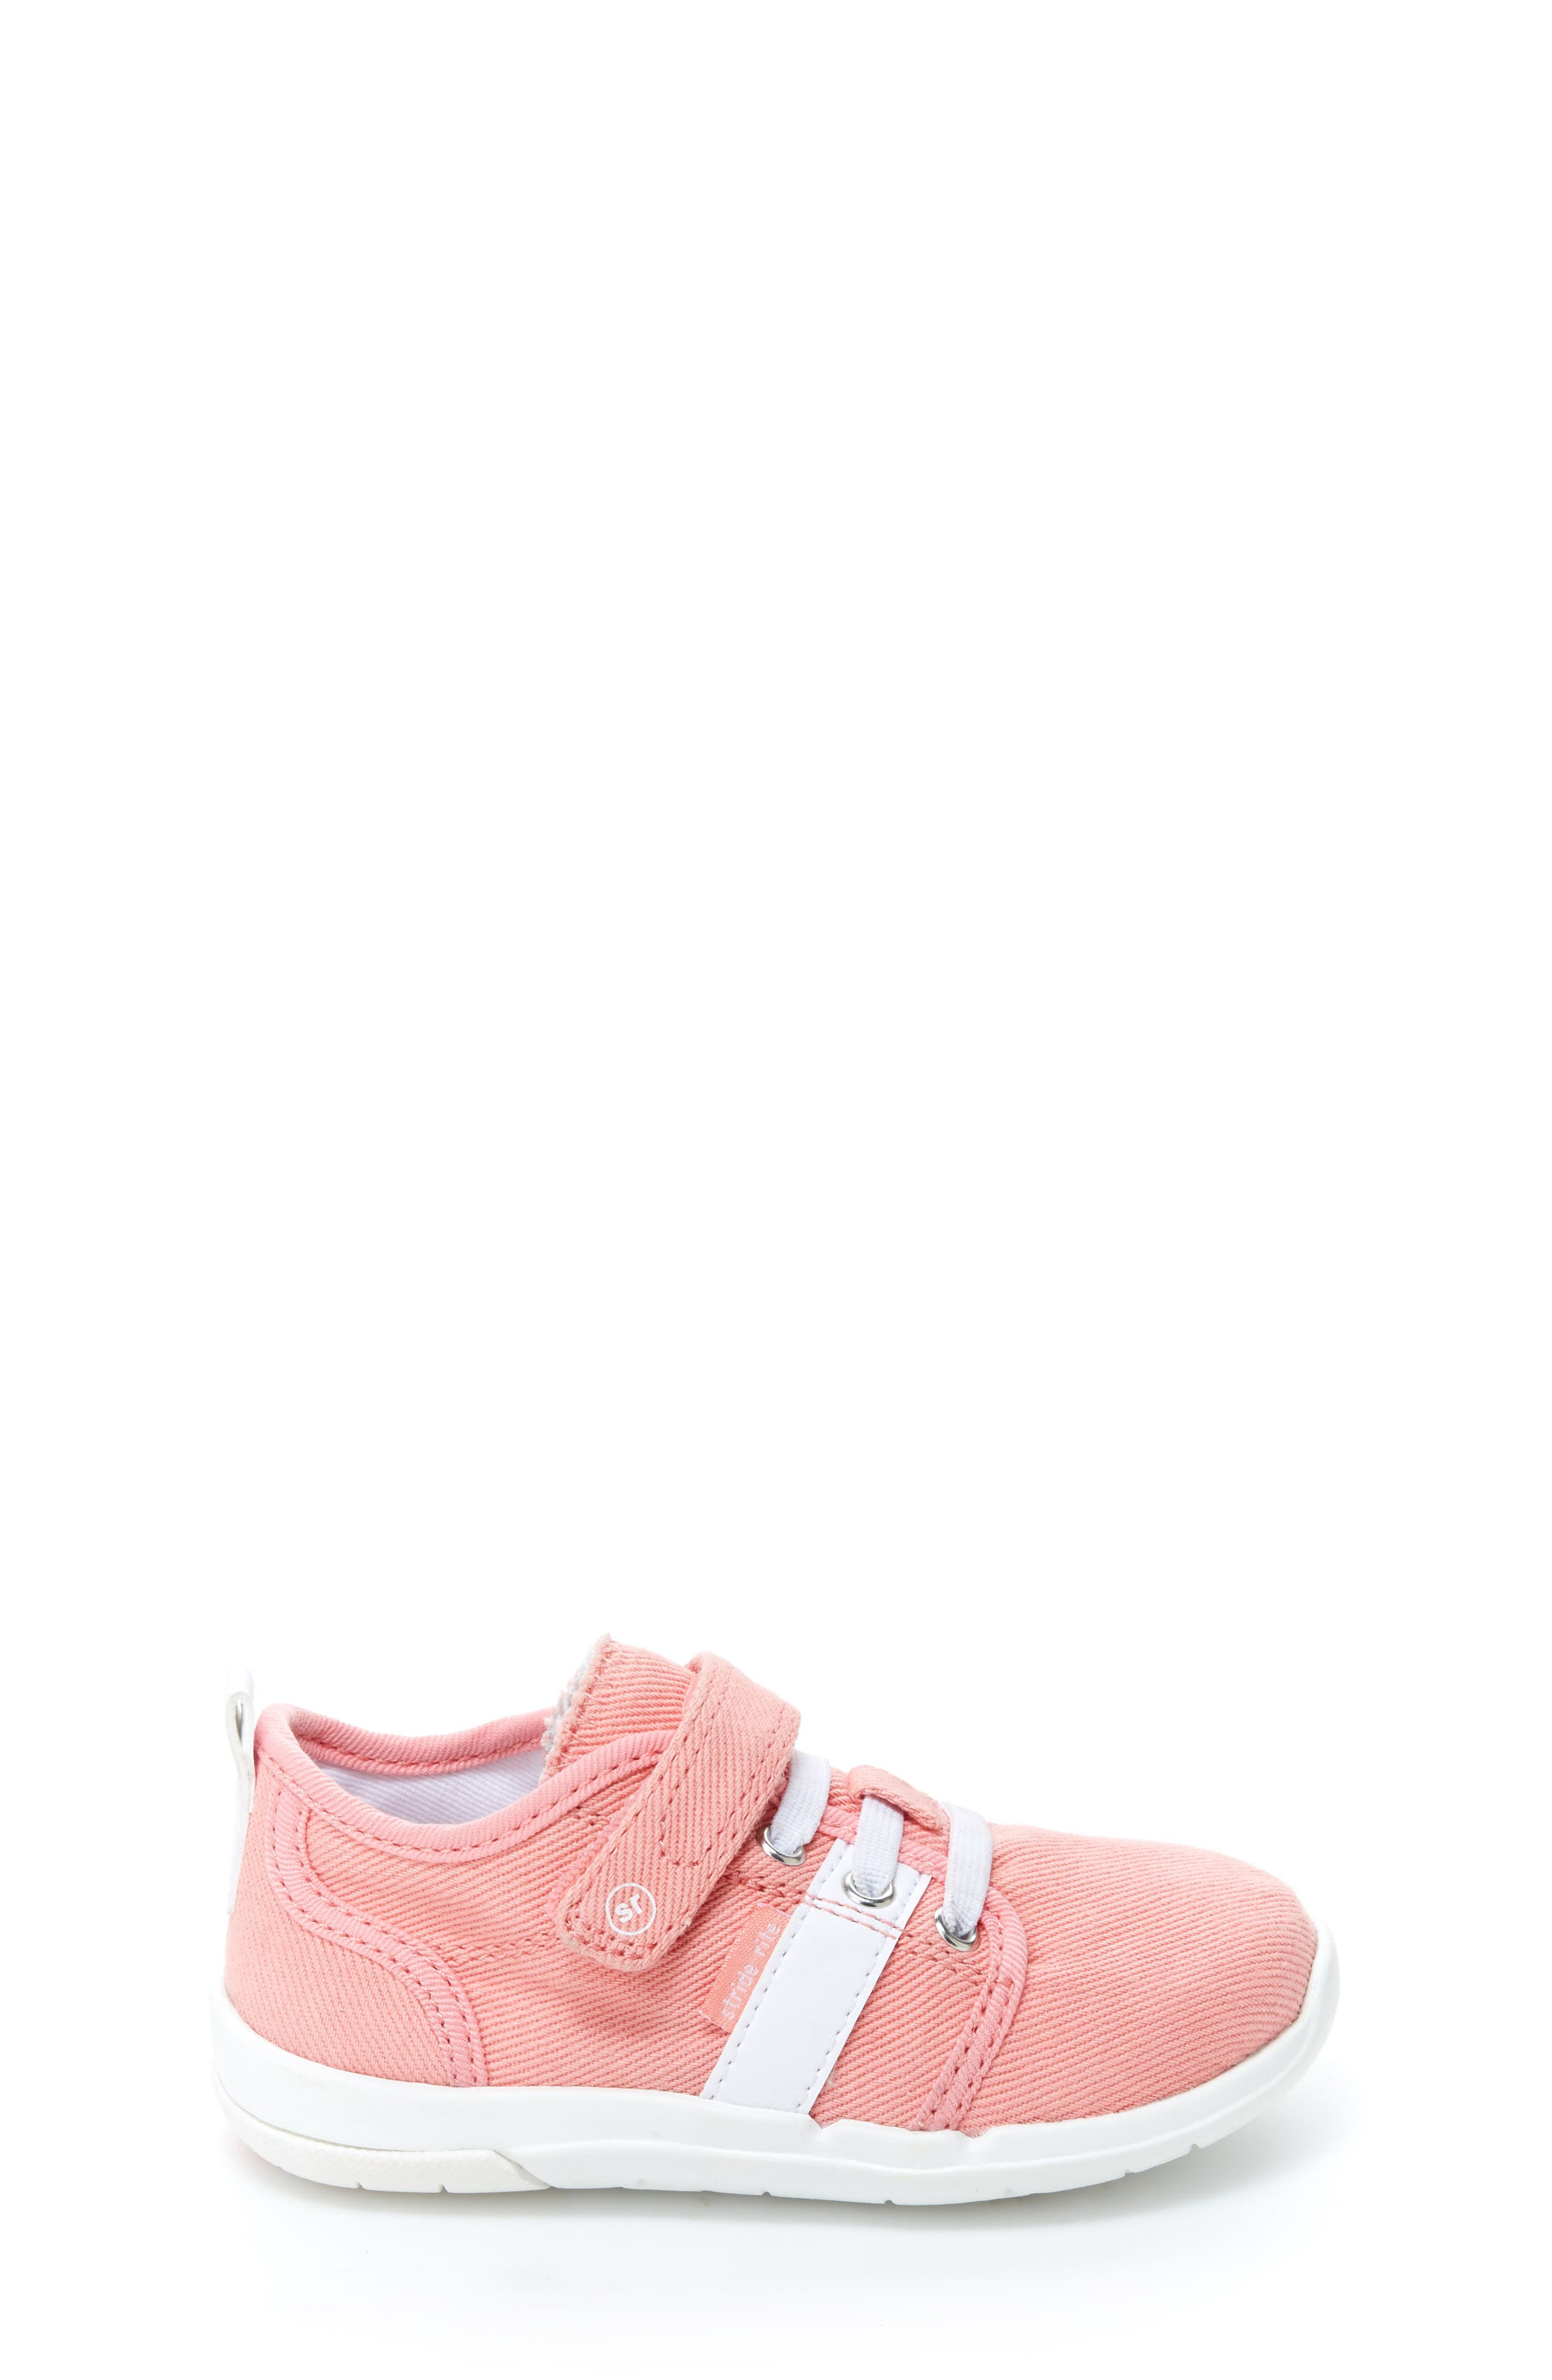 Dixon Sneaker,                             Alternate thumbnail 3, color,                             Pink